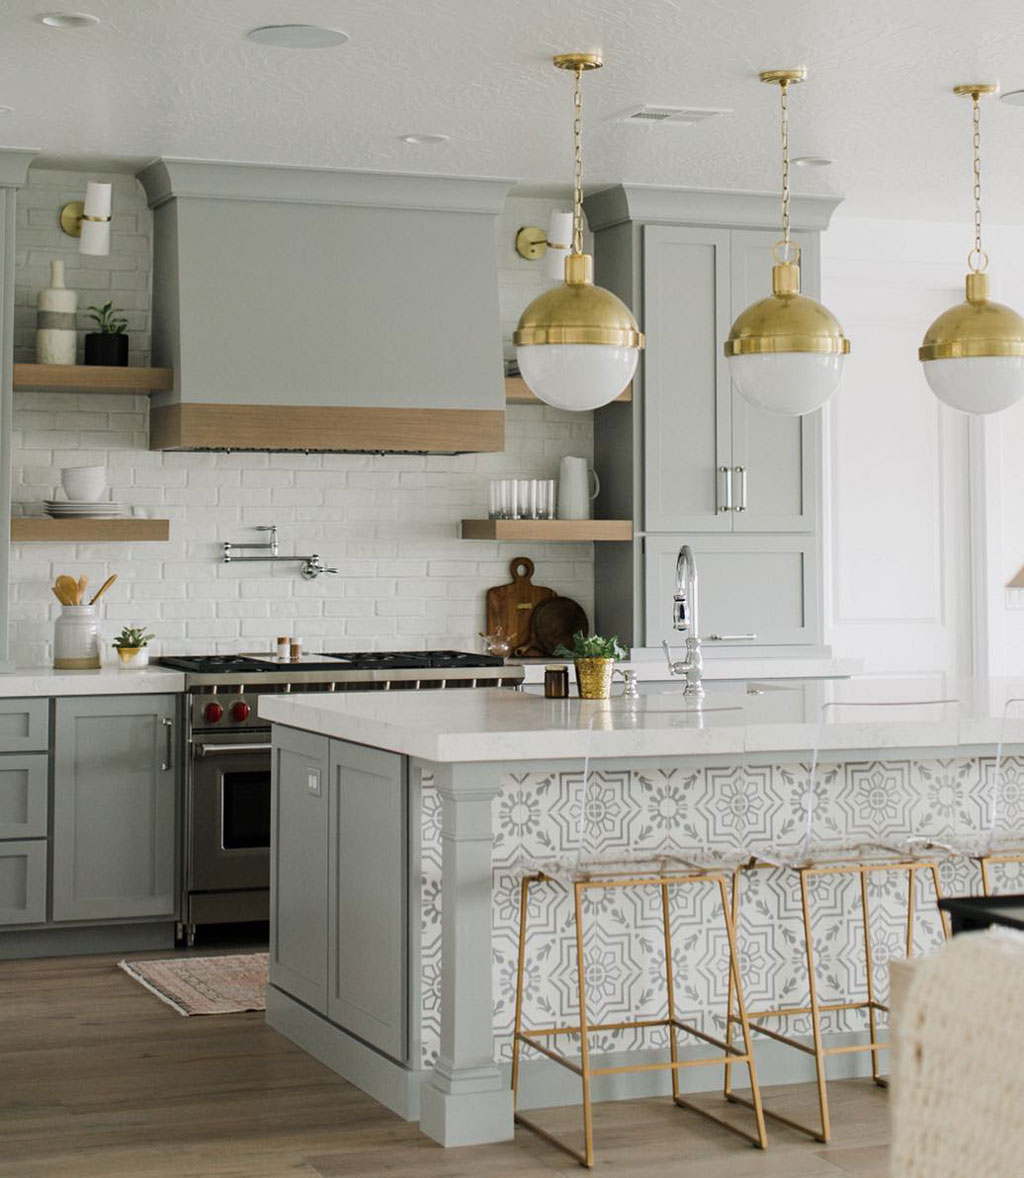 Clean Kitchen Design with Gabby King Barstools